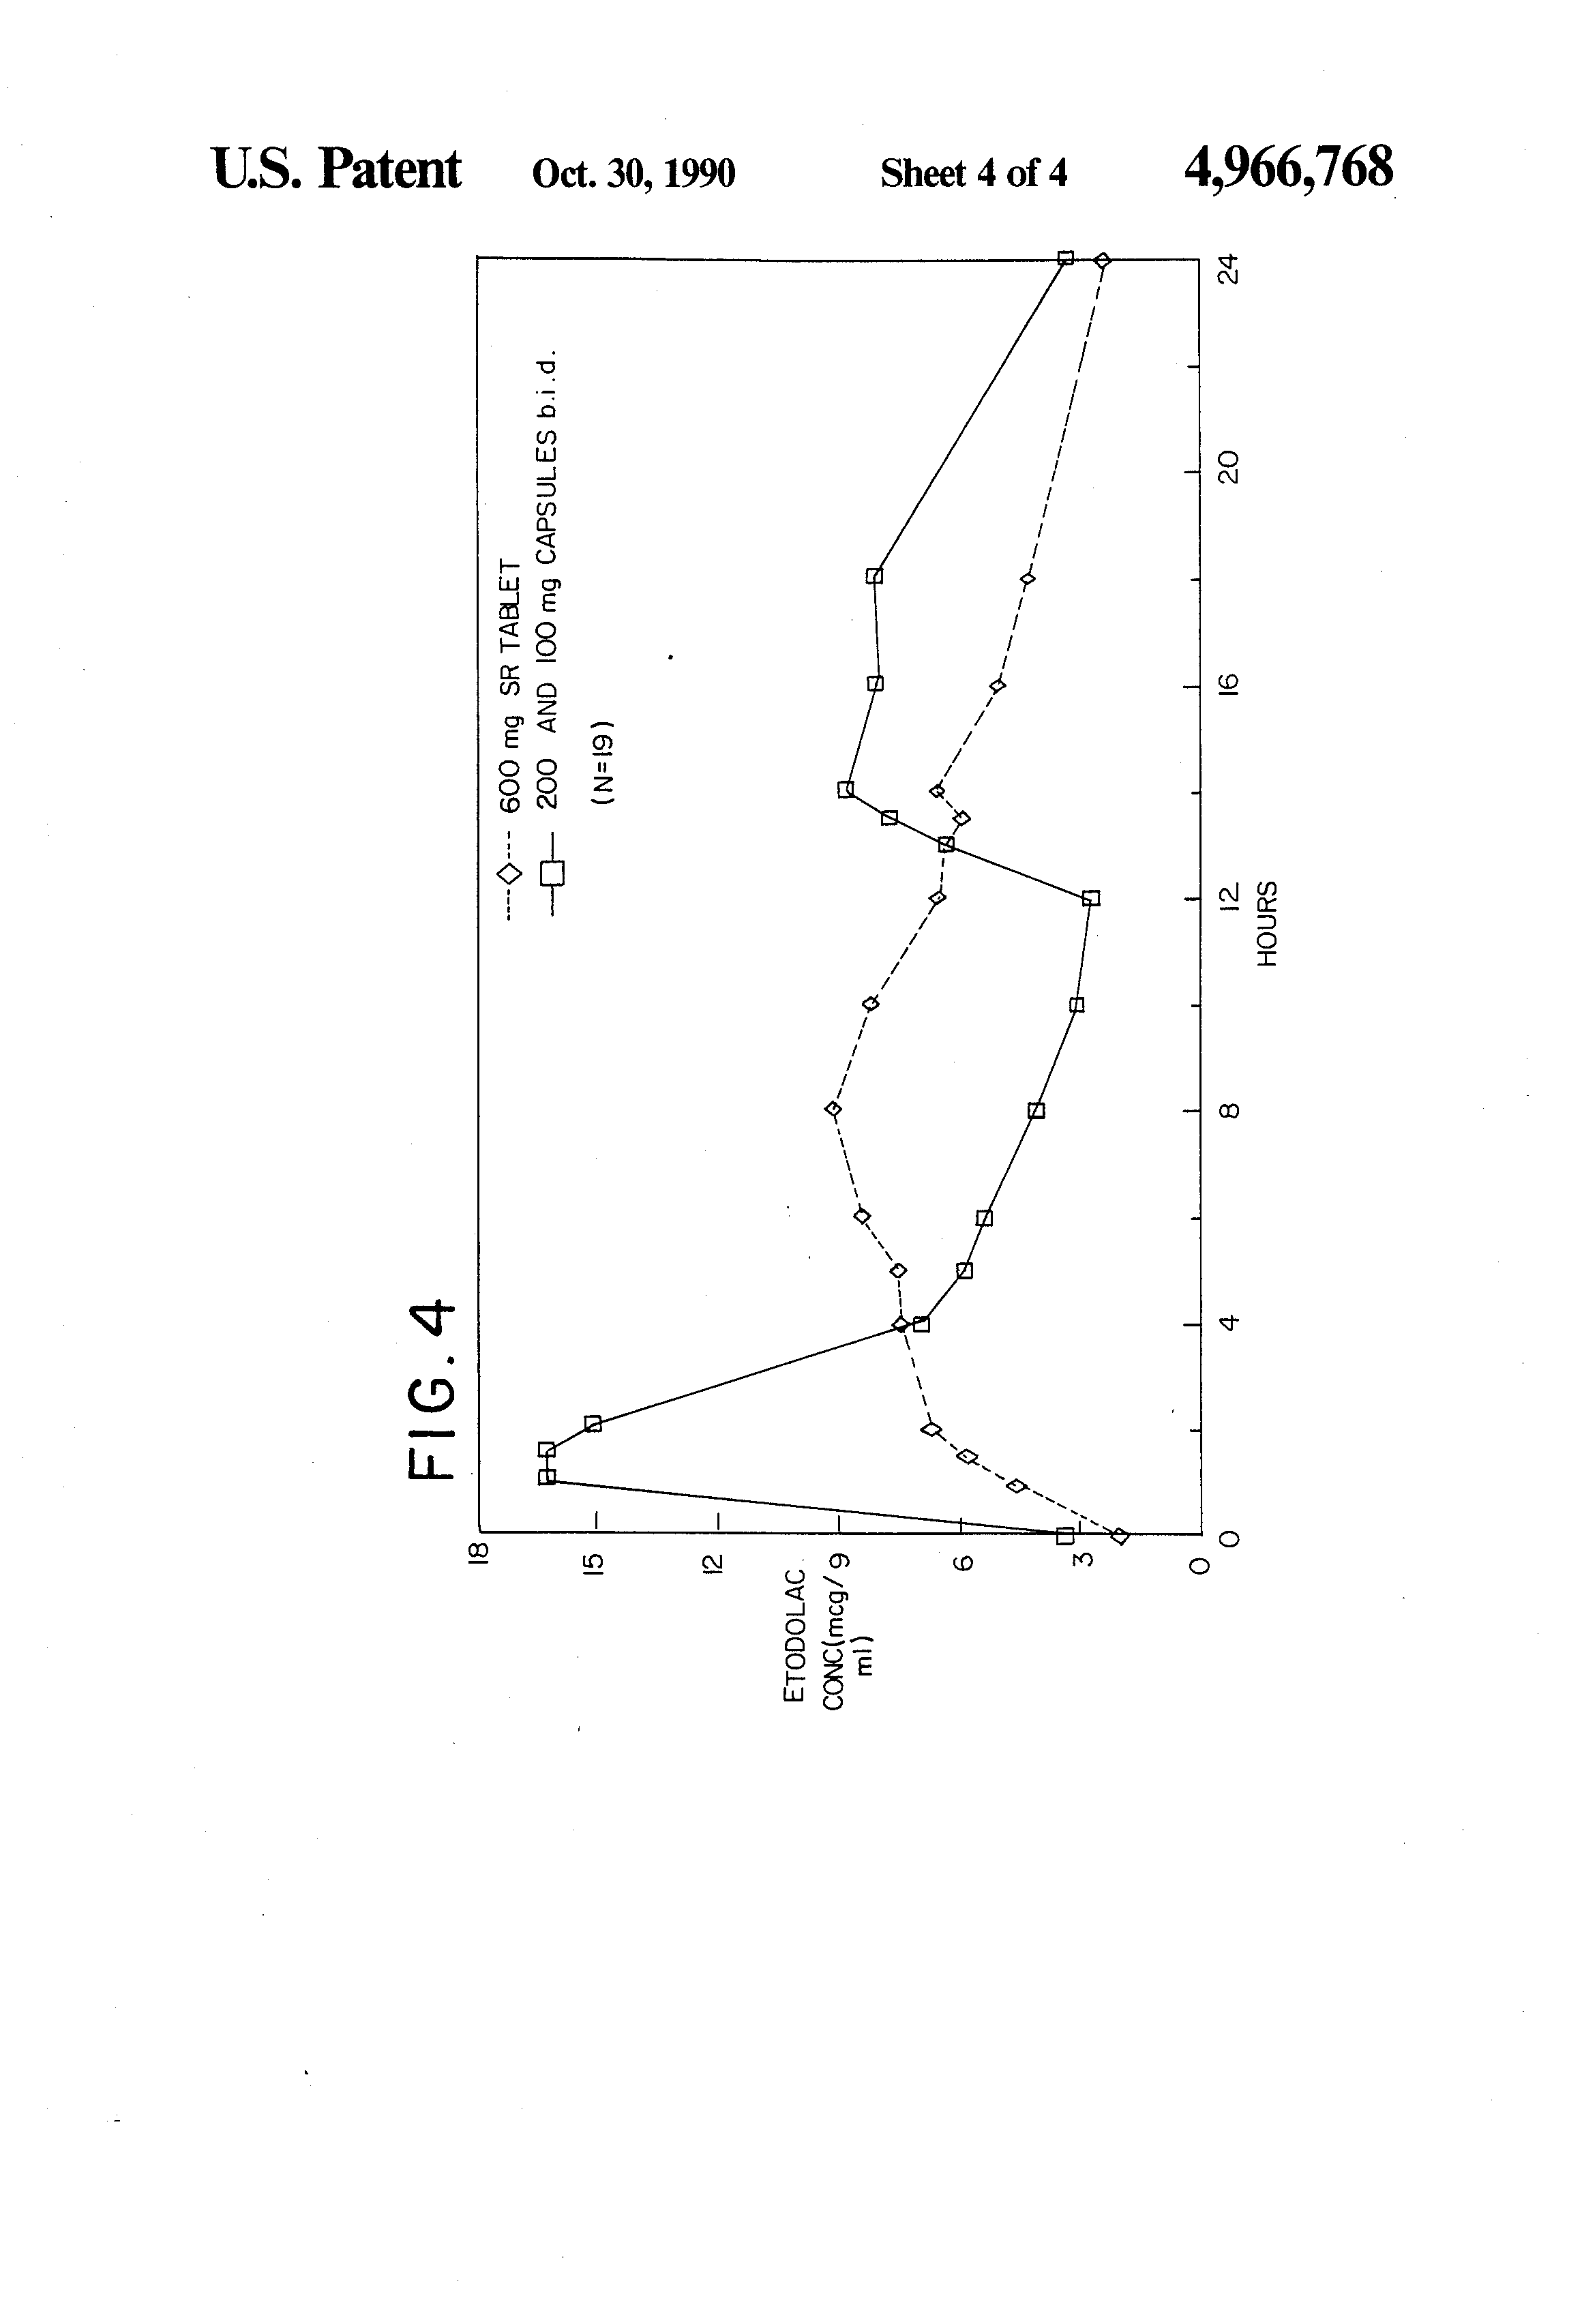 Etodolac 300 mg prices doc - Patent Drawing